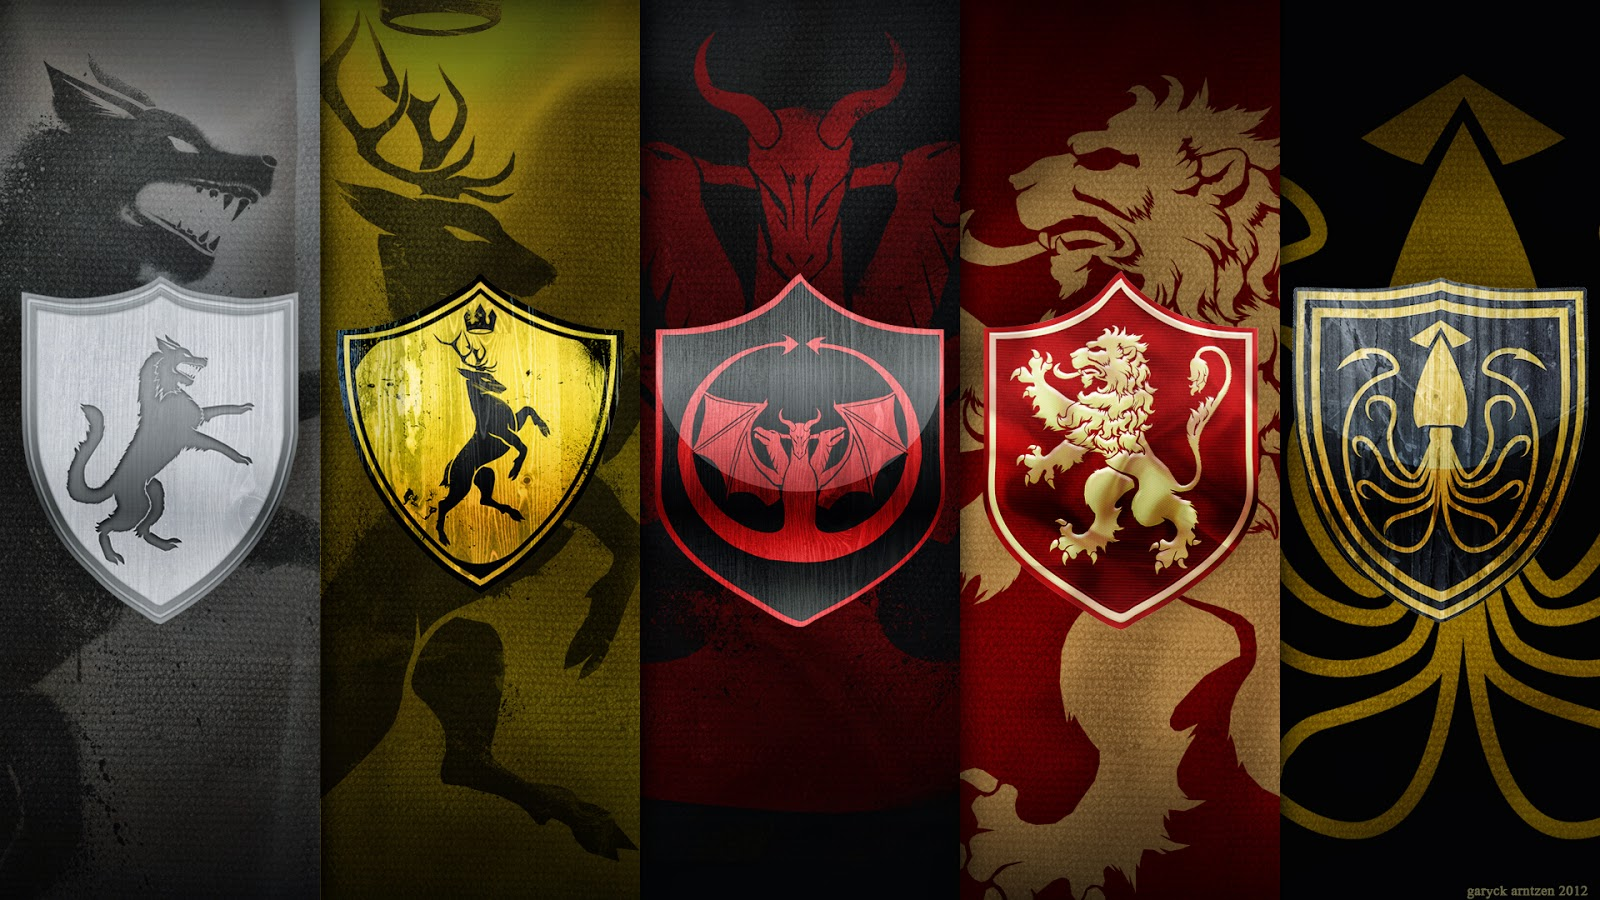 New game of thrones wallpaper ipad